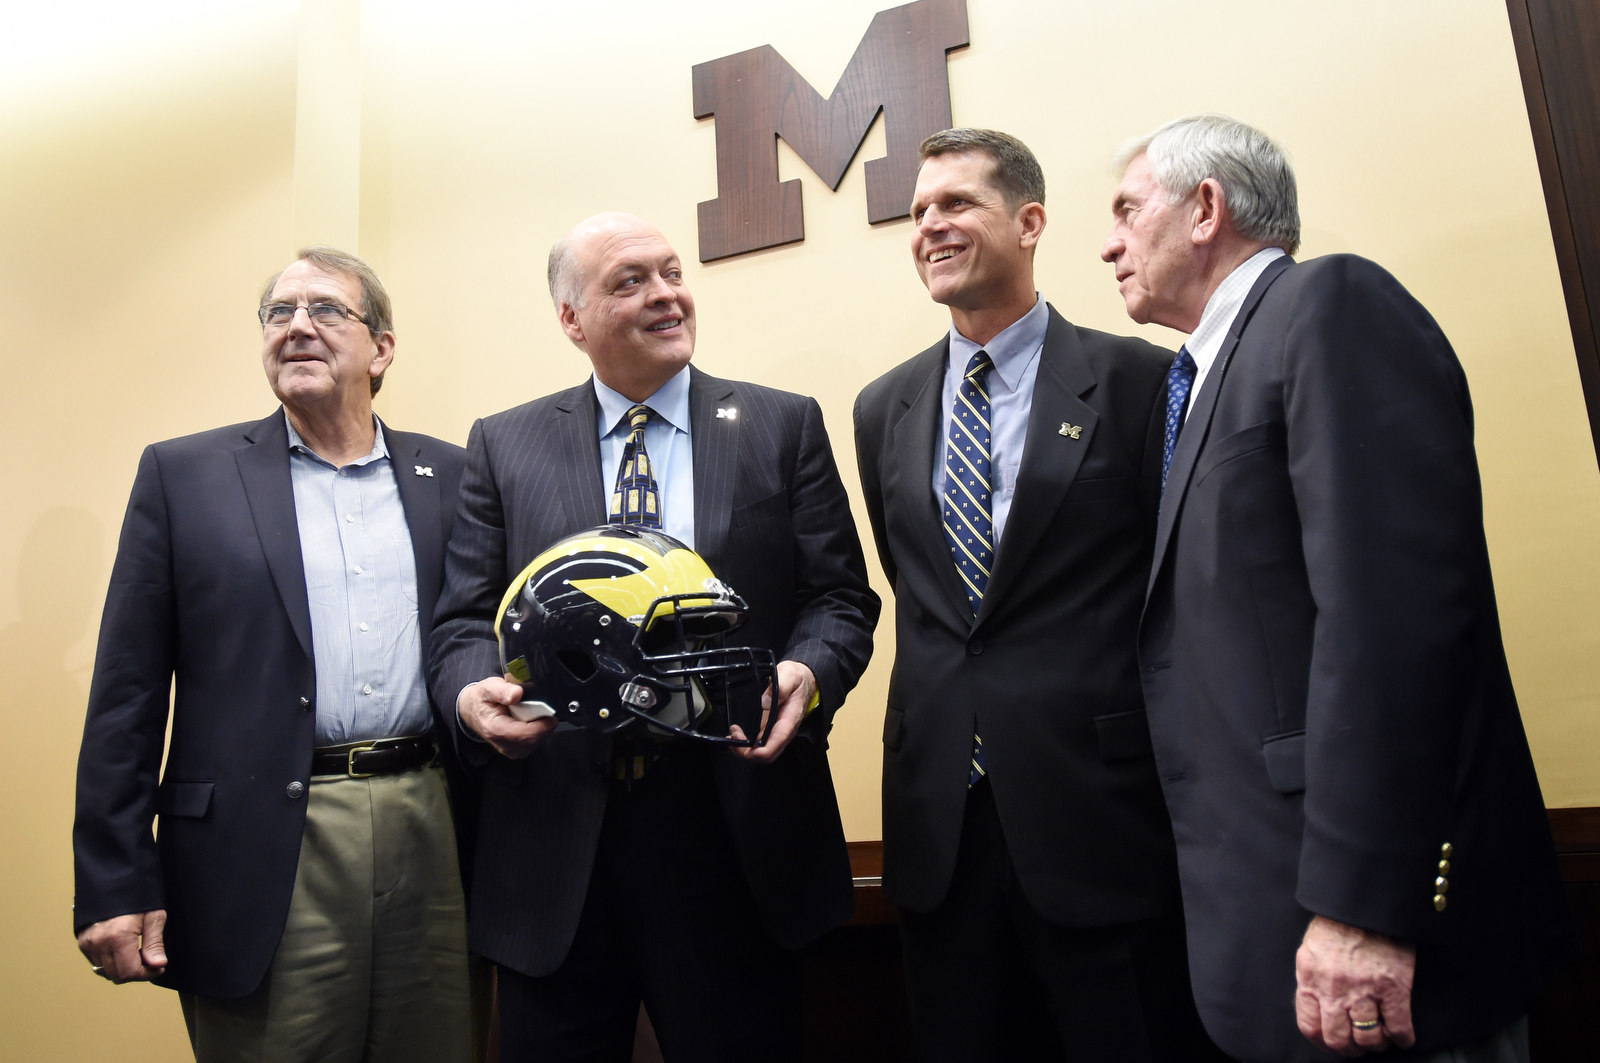 Jim Harbaugh and Michigan football: Offense still looking for stability after four seasons